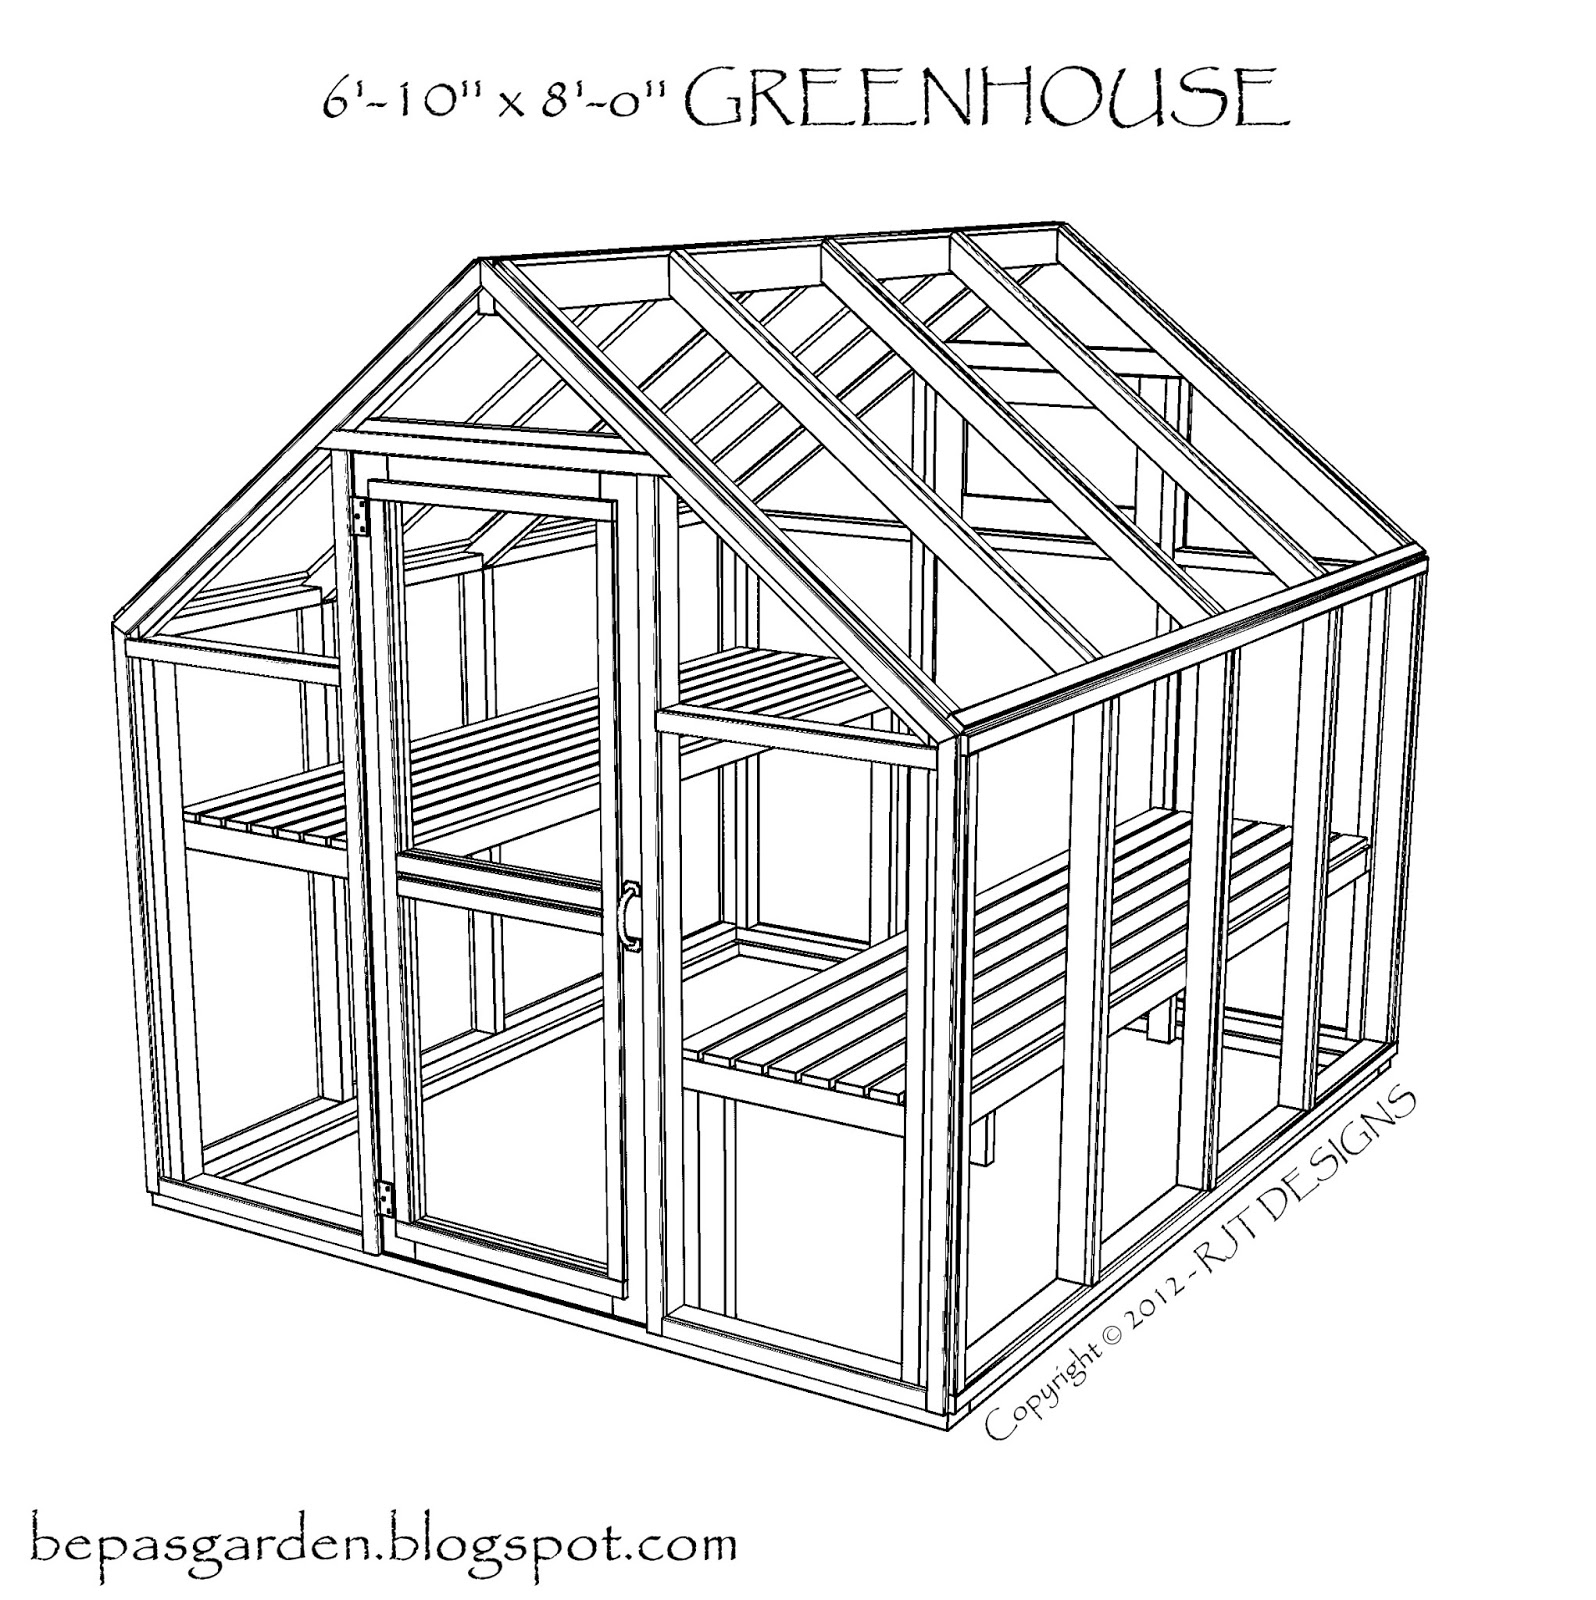 Bepa 39 s garden pdf version of greenhouse plans now available for Greenhouse plans